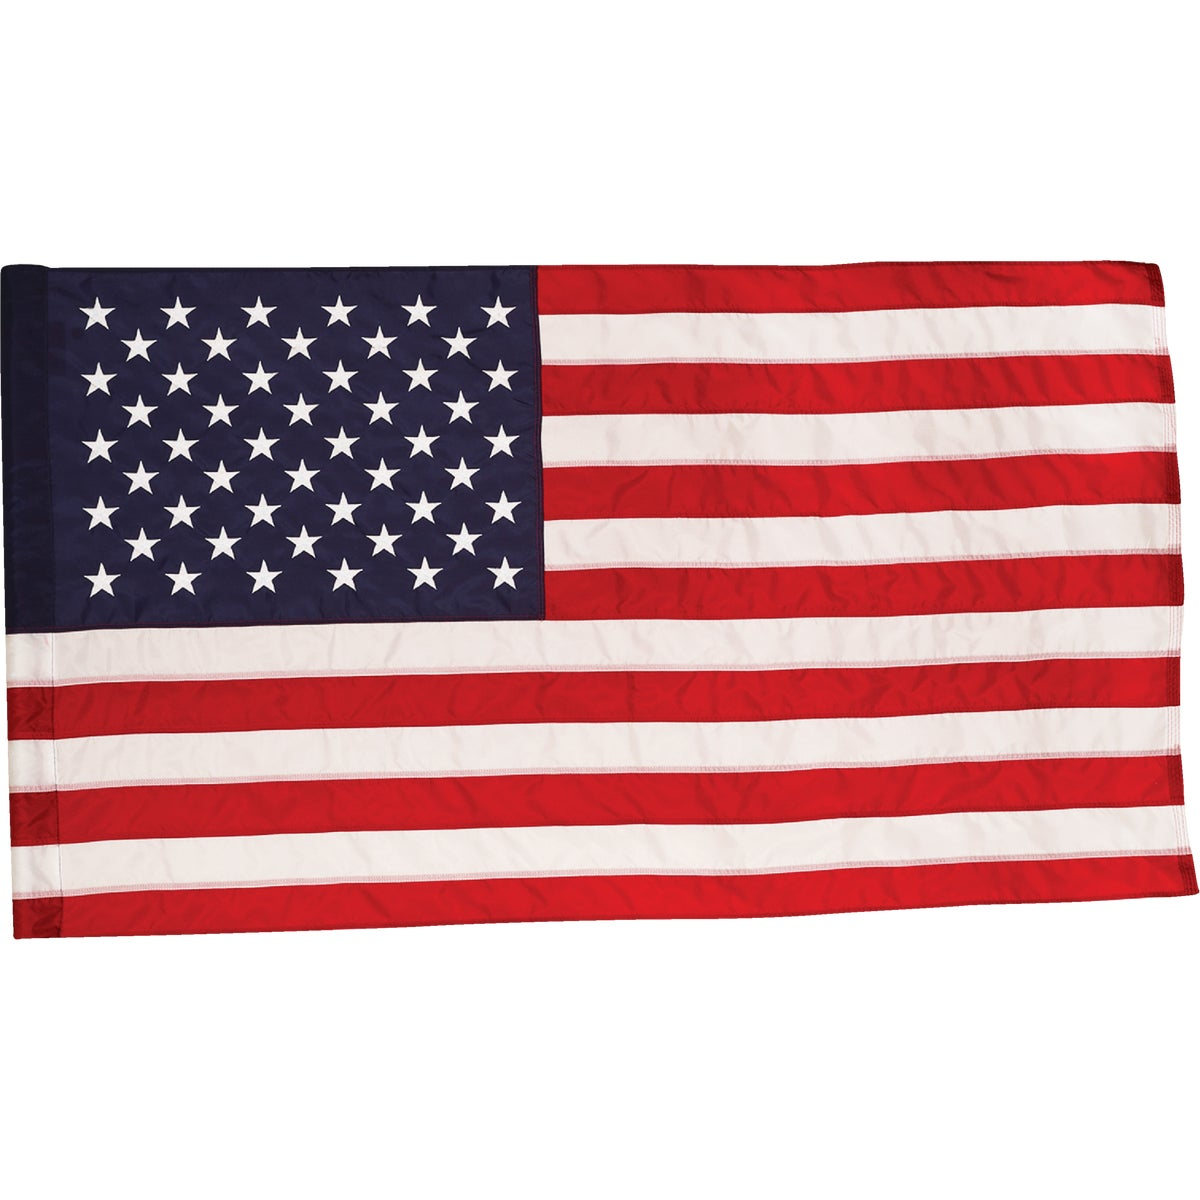 DECORATIVE US FLAG - 60650 by Valley Forge Flag